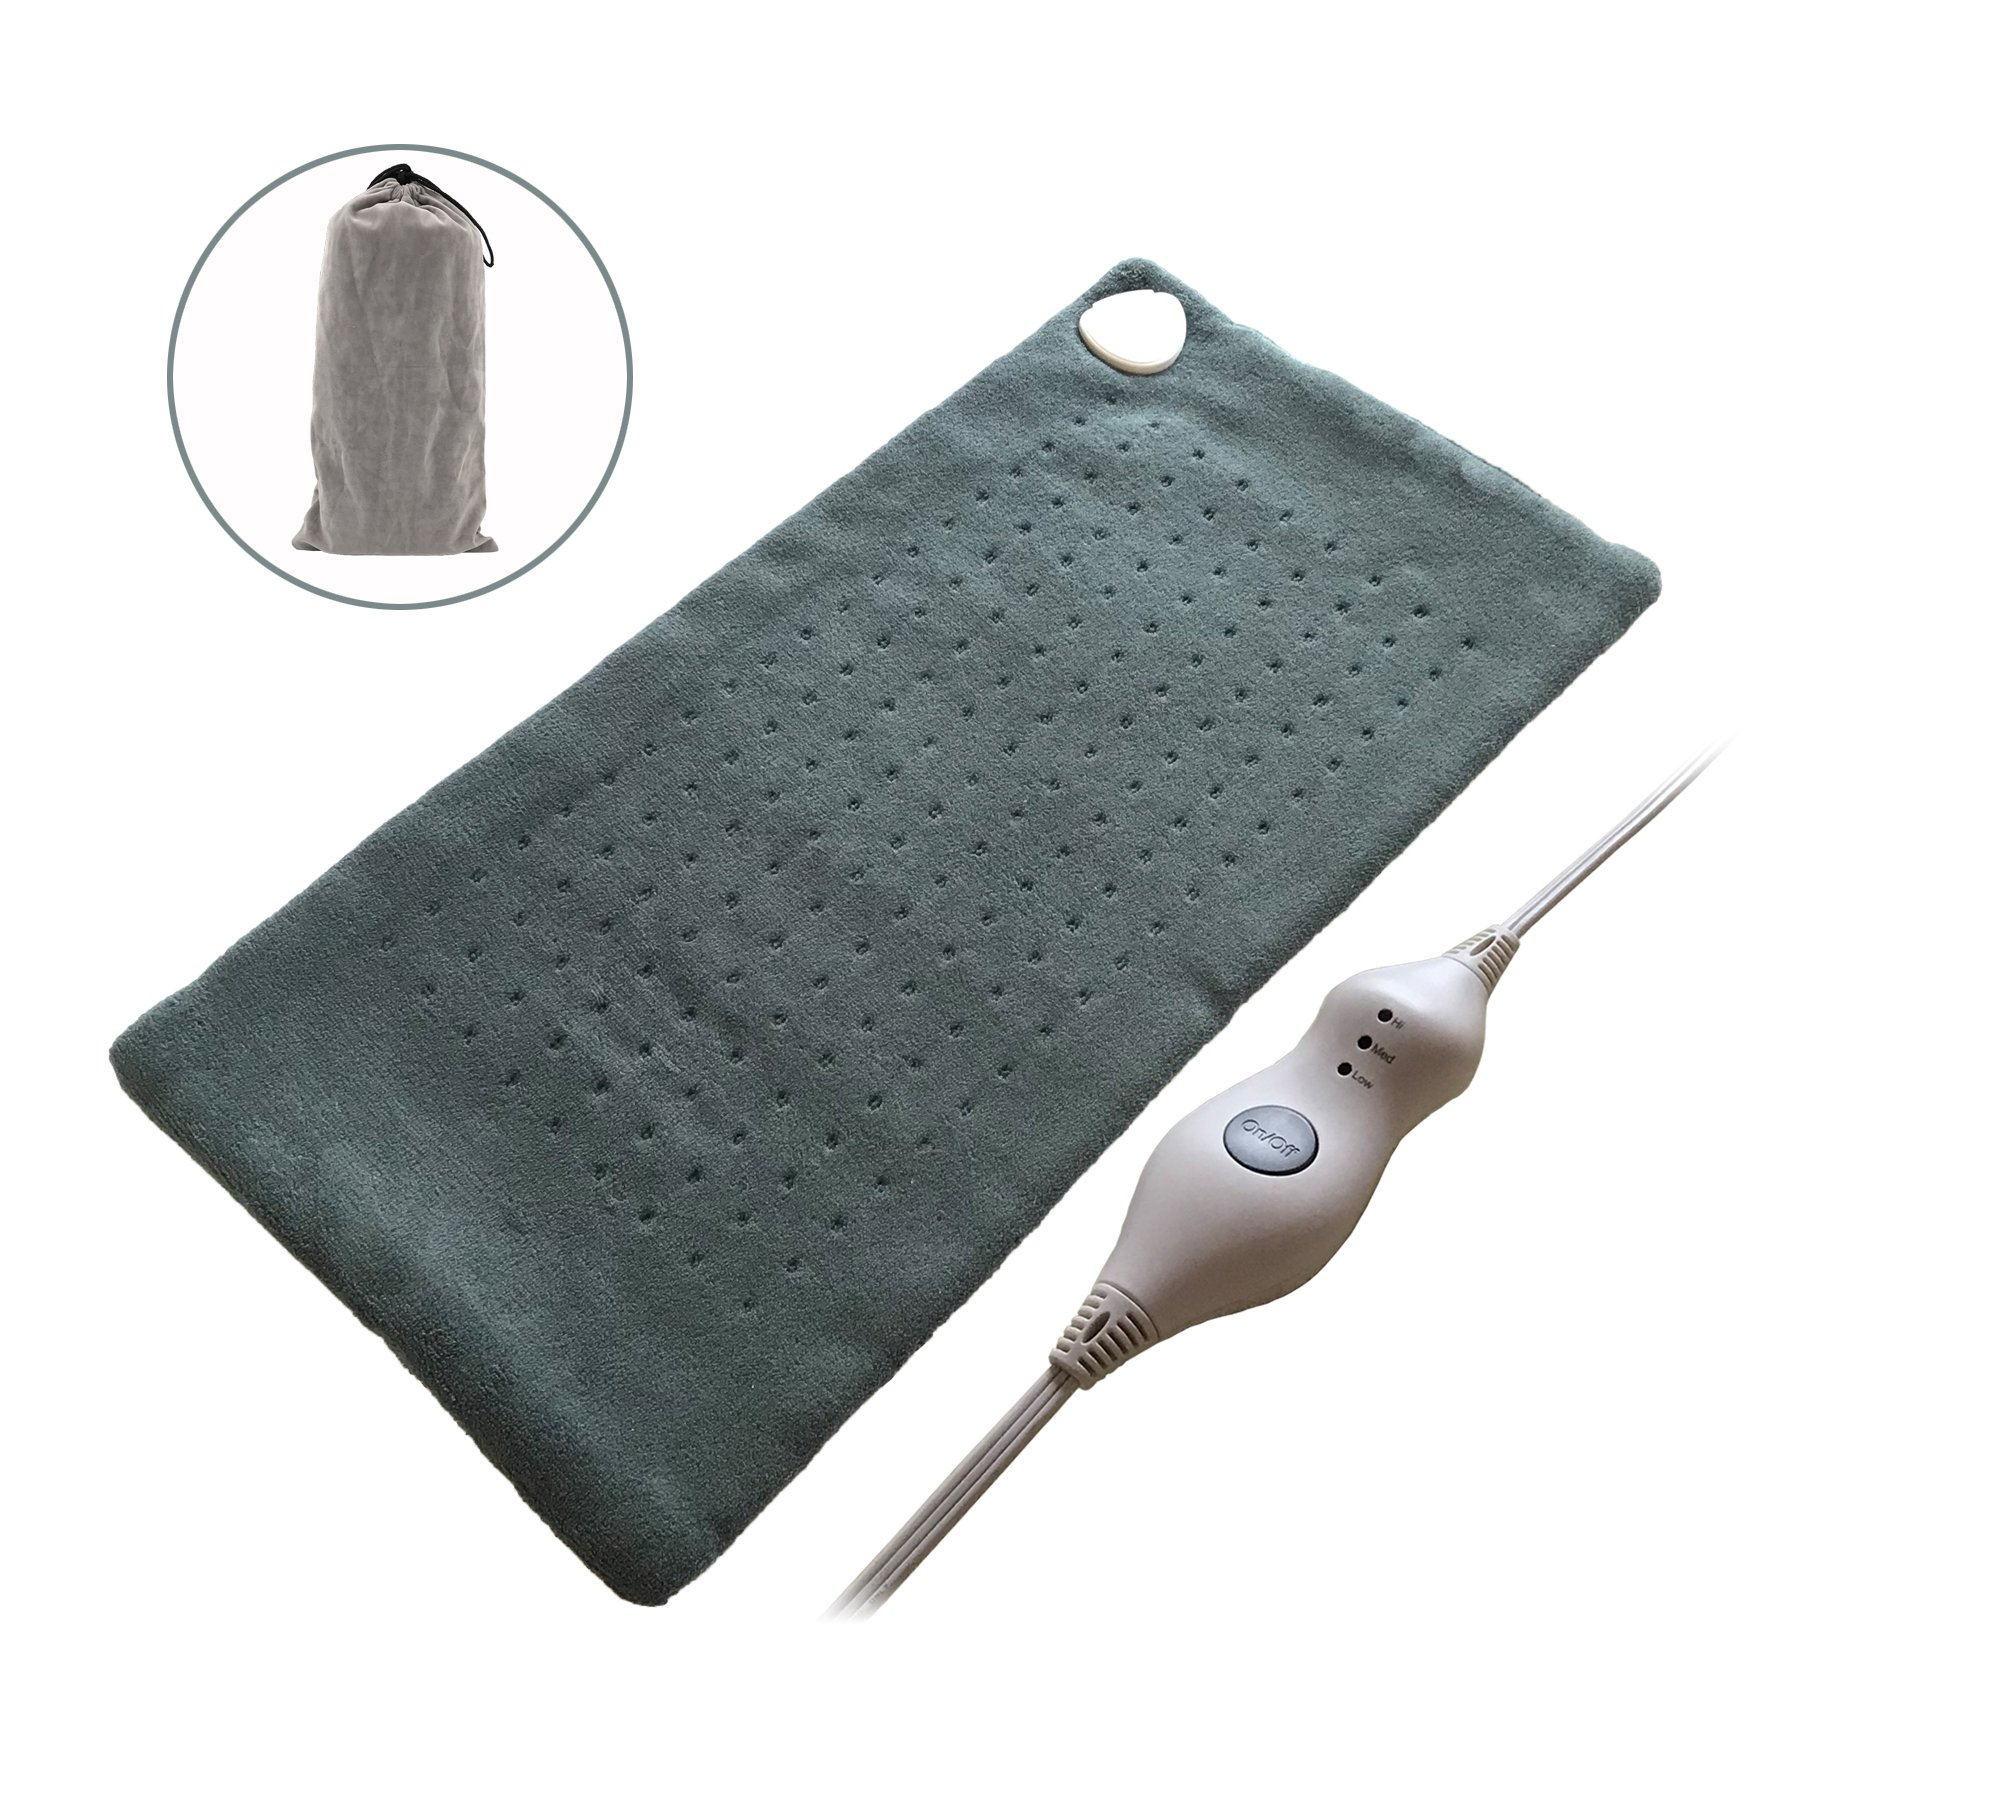 Koo-Care King Size XL Heating Pad with Fast-Heating Technology, 3 Temperature Settings & Super Soft Microplush - (12'' x 24'')